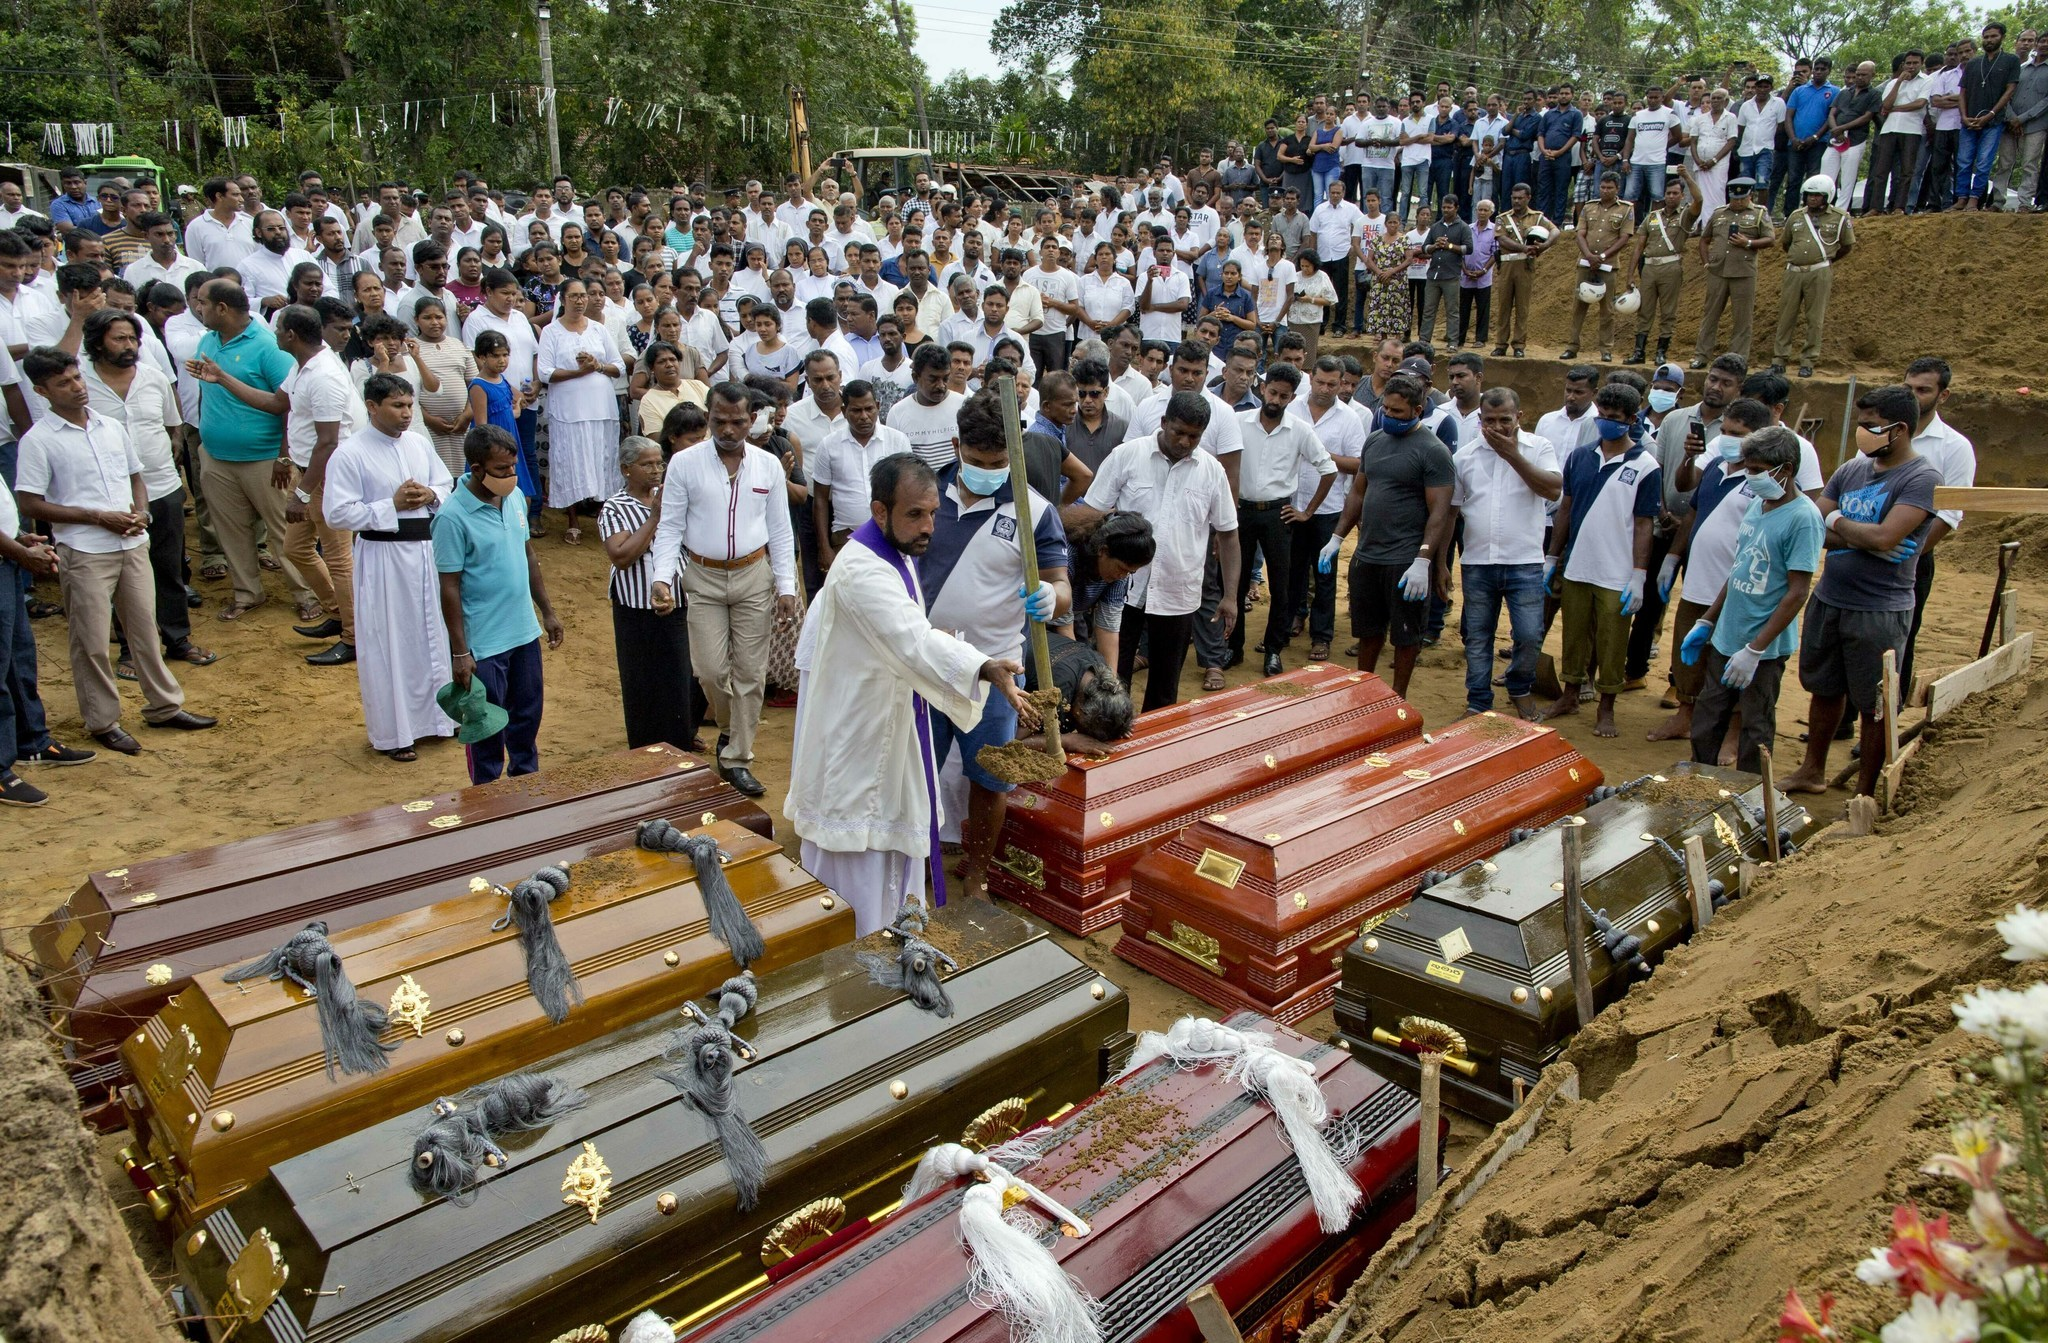 Sri Lanka asks for resignations of top security officials as death toll climbs over 350 people